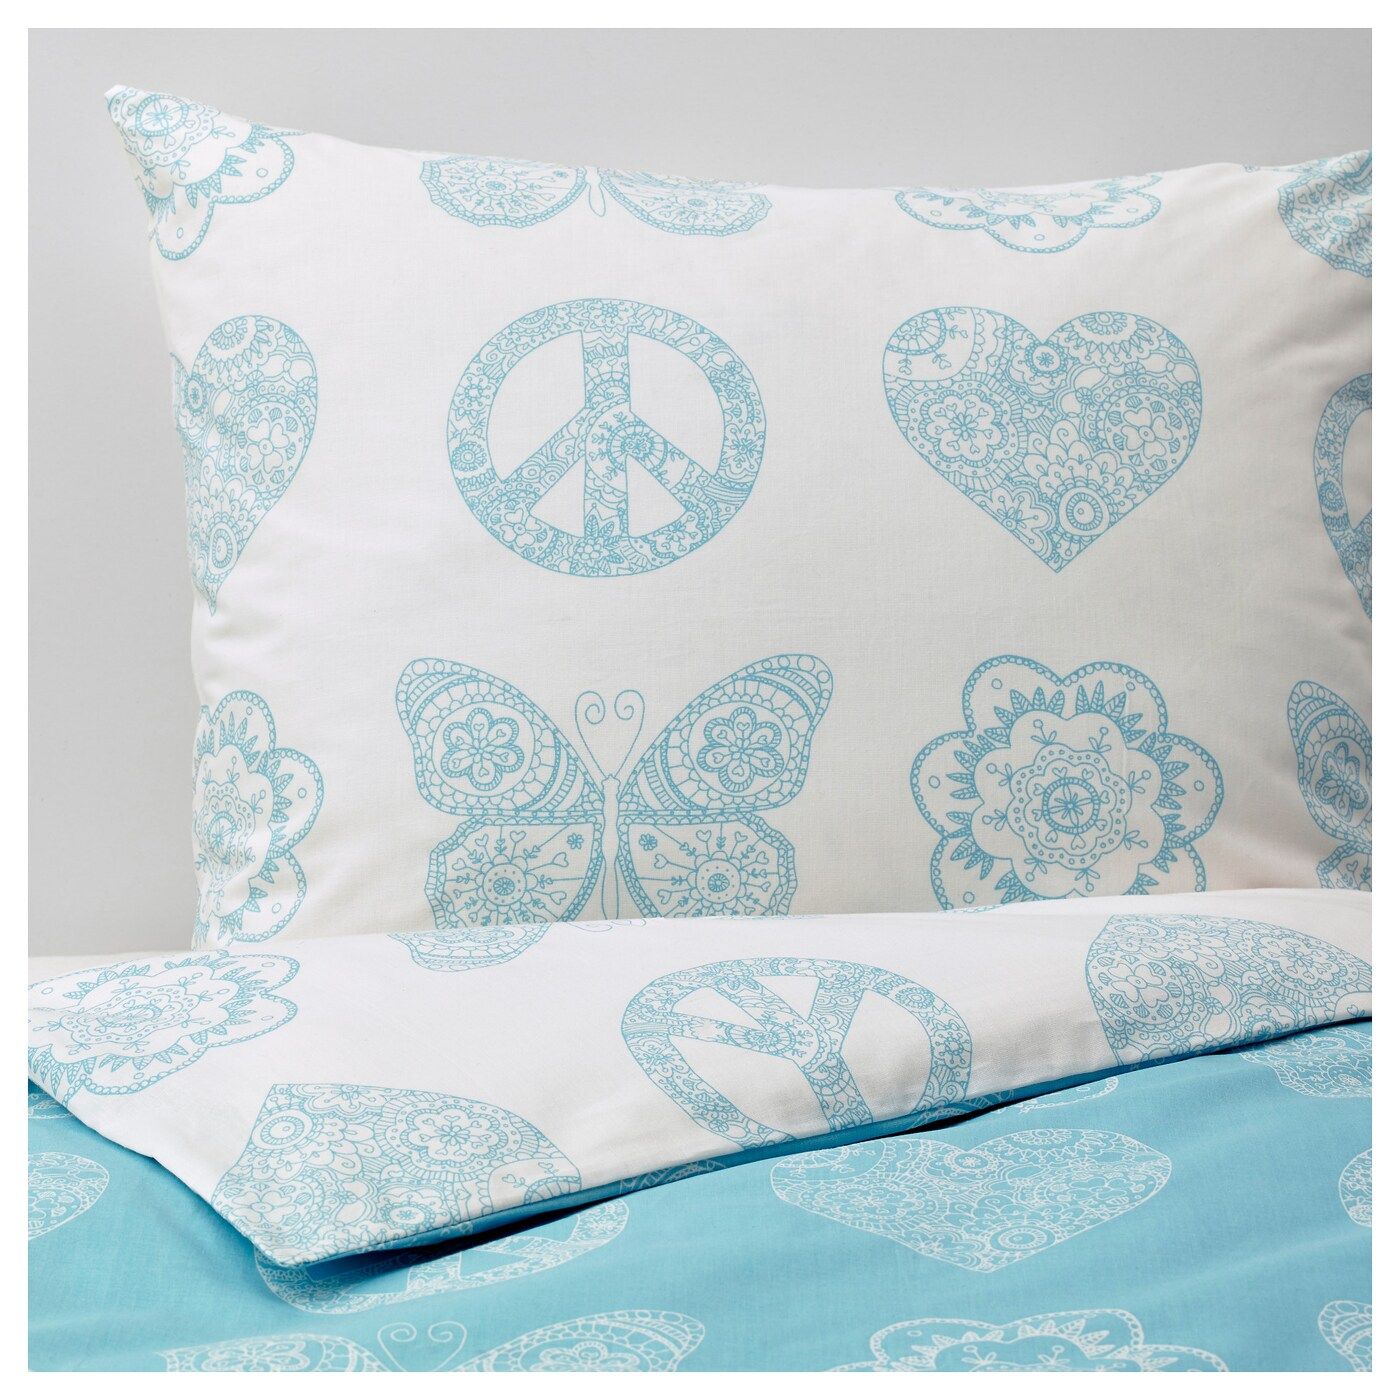 Turquoise Quilt Cover VÄnskaplig Quilt Cover And Pillowcase Turquoise 150x200